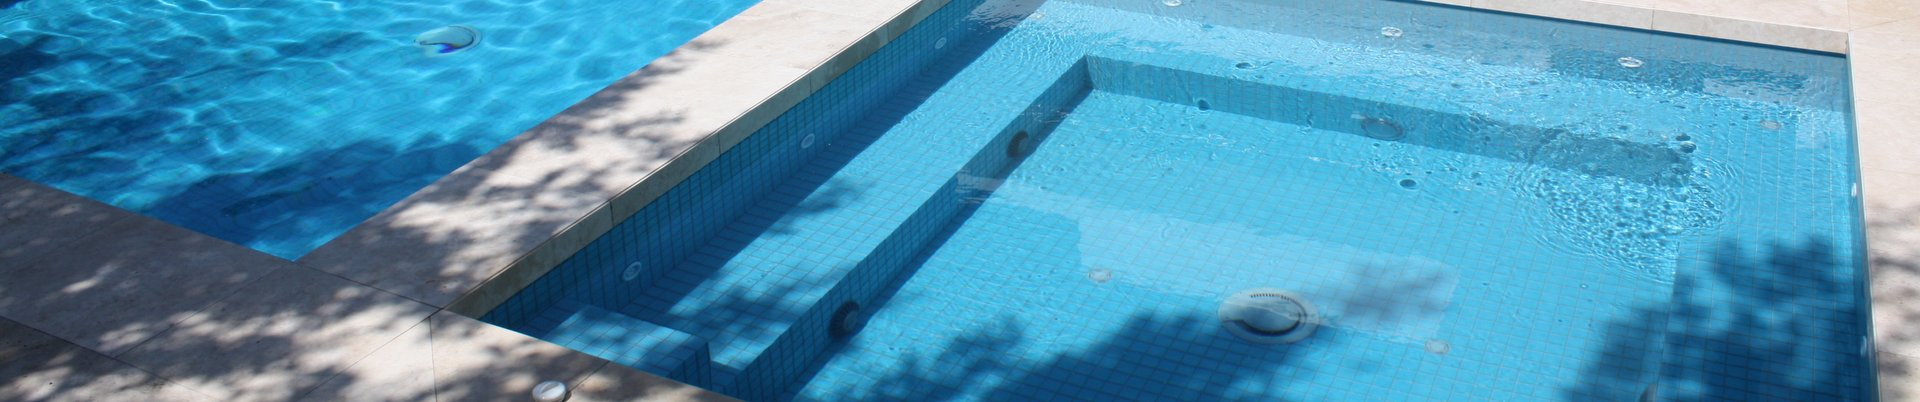 Swimming Pool Spa Renovations Sydney Swimming Pool Repair Maintenance Hills Districts Lower